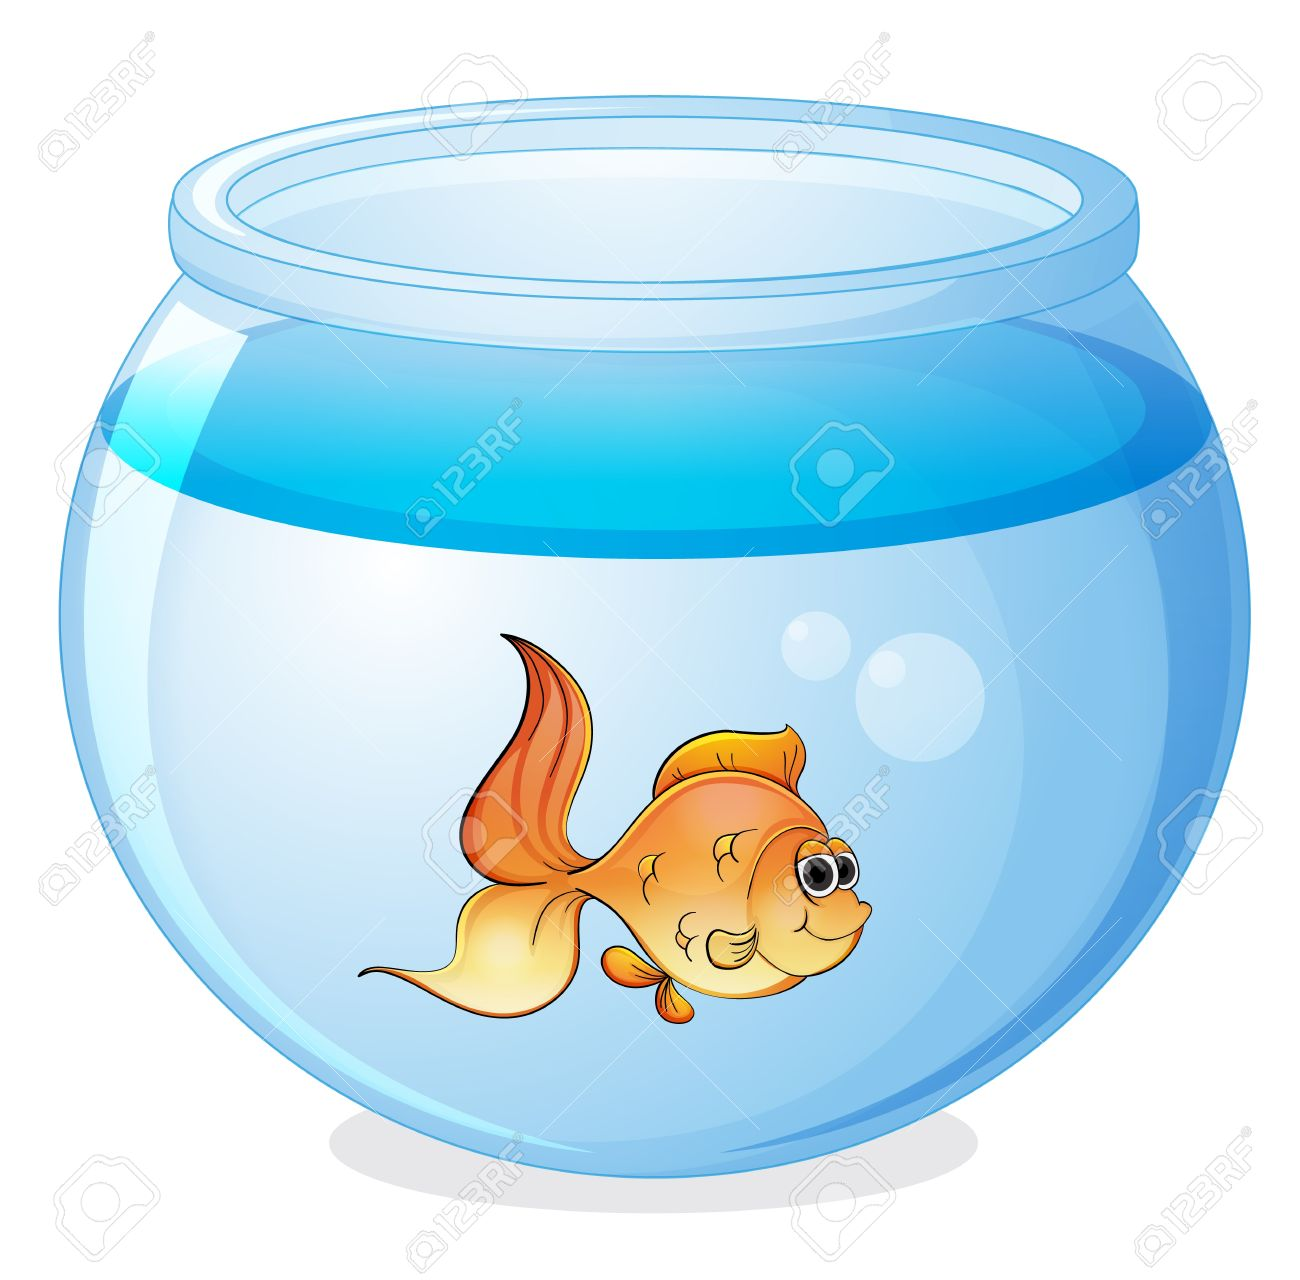 Goldfish bowl clipart clipground for Fish in a bowl